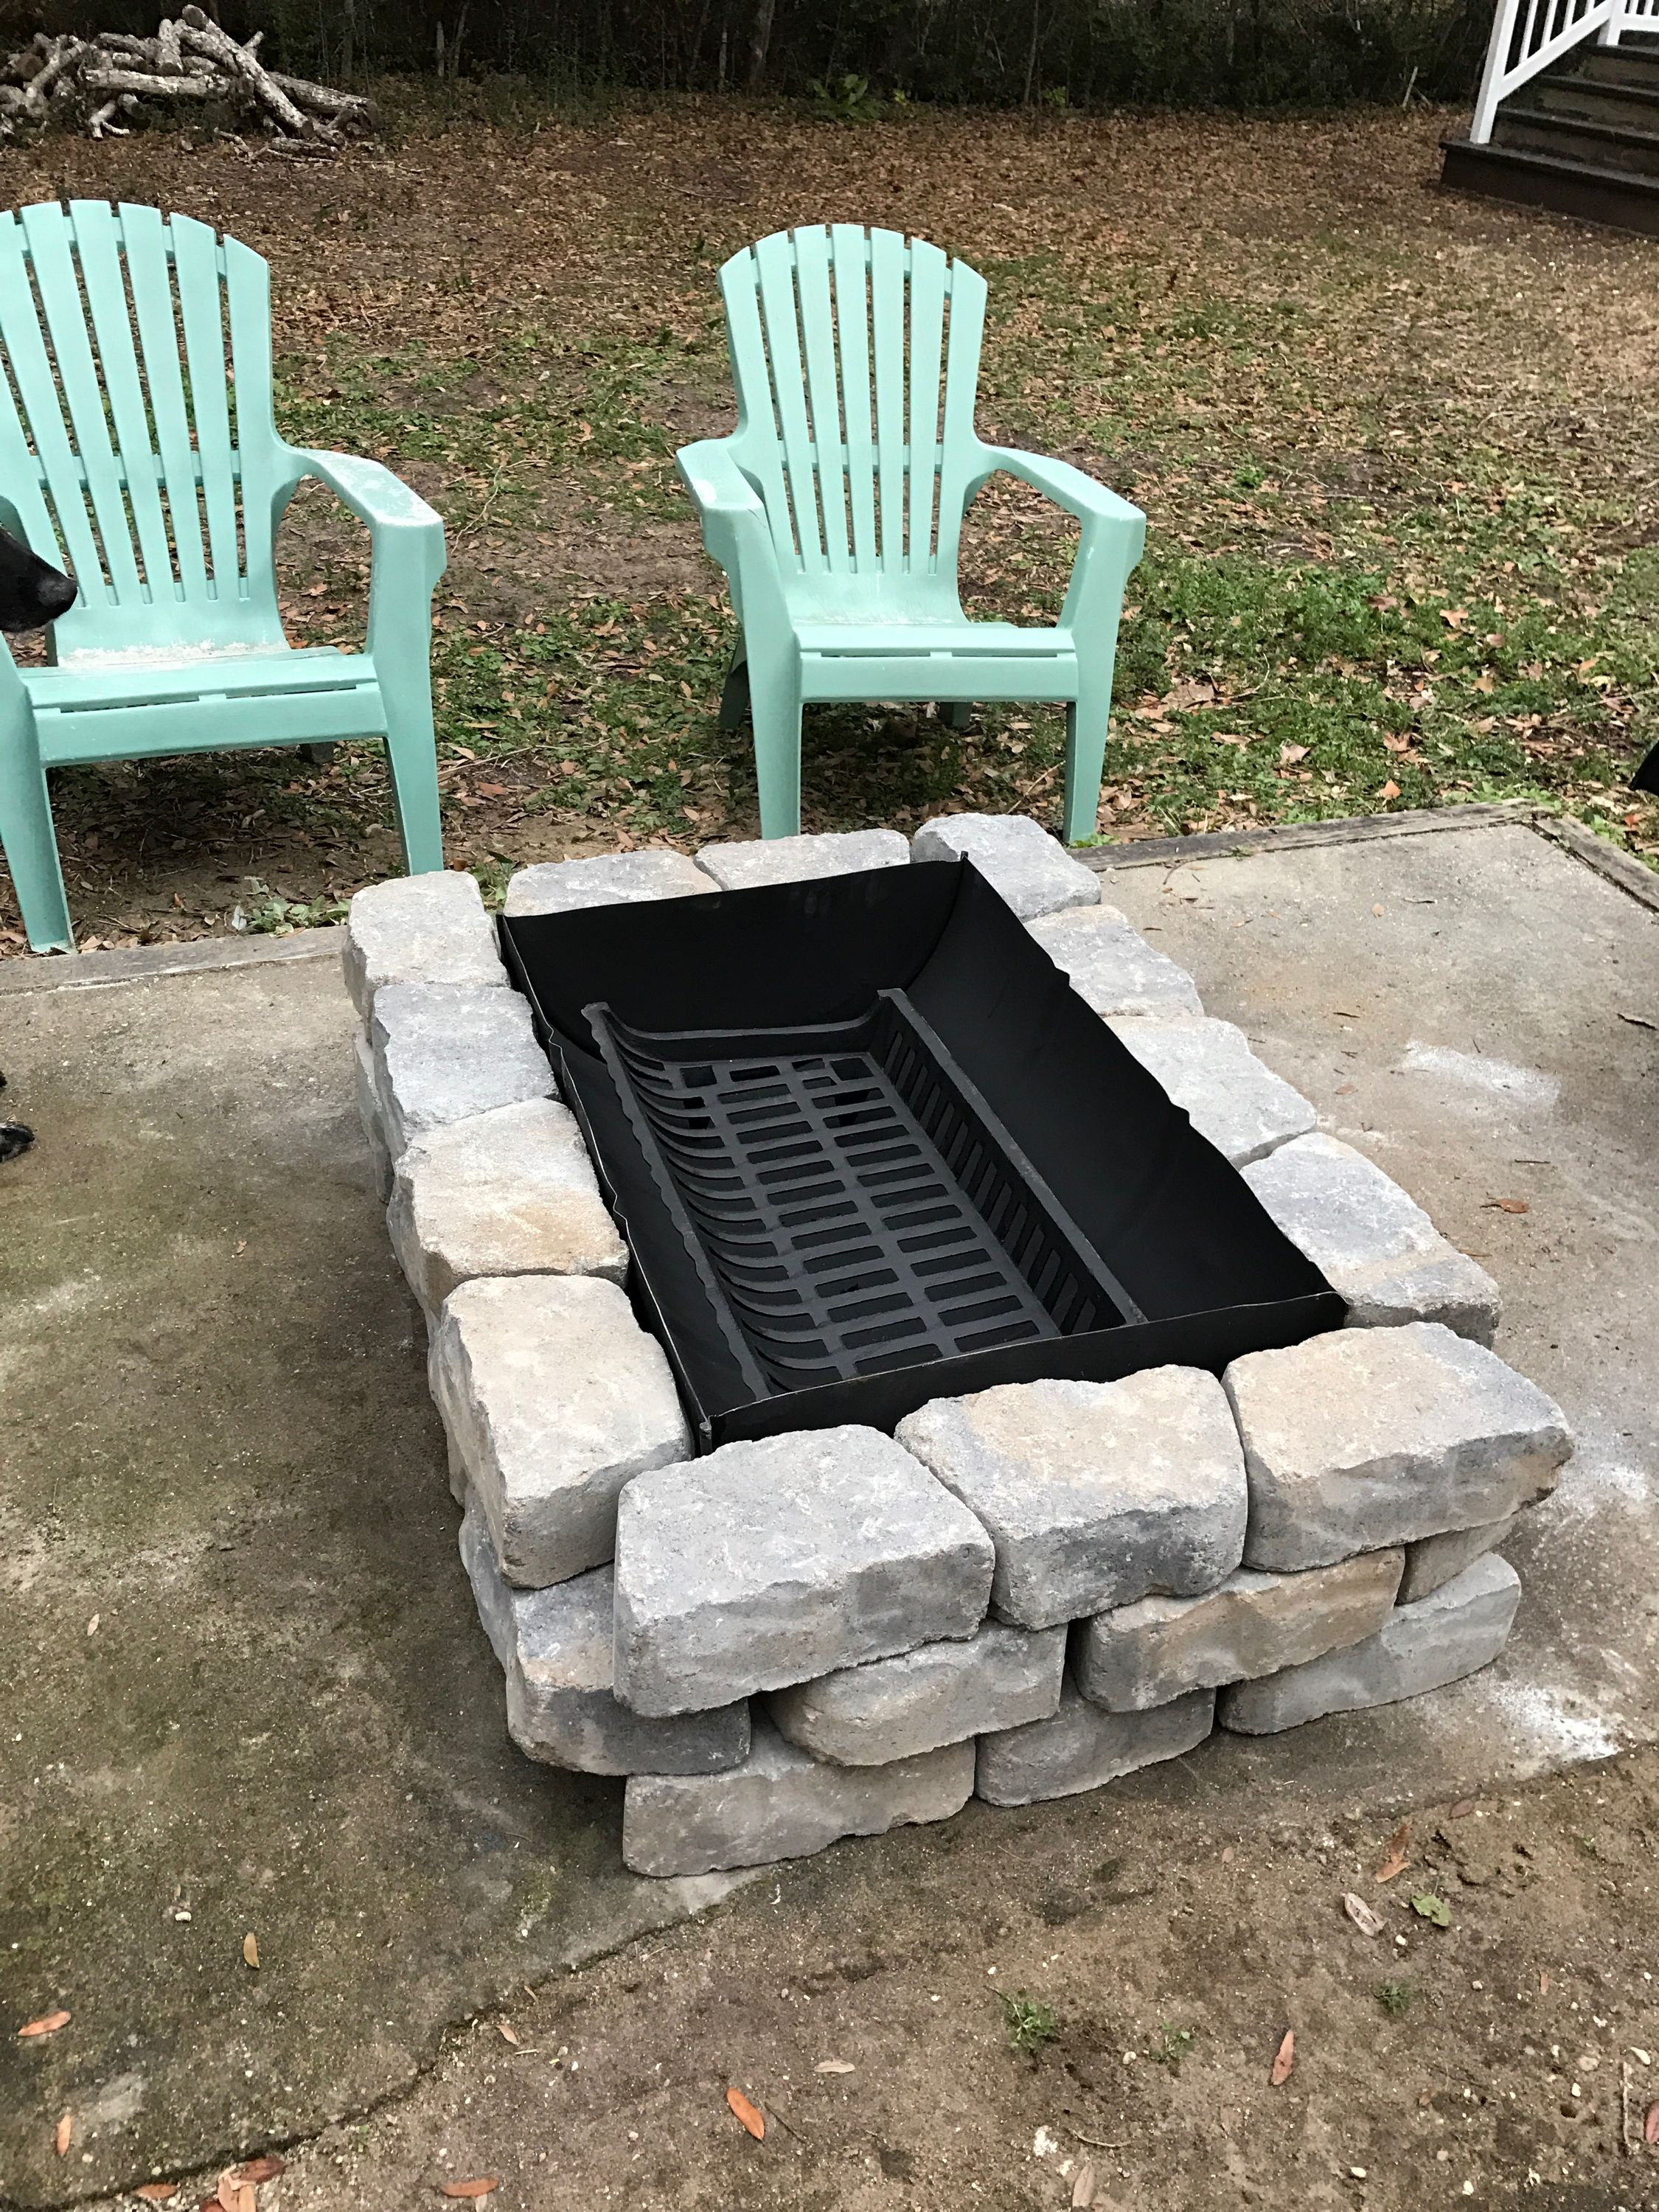 Inexpensive Fire Pit made from a 55 Gallon Drum a grate from